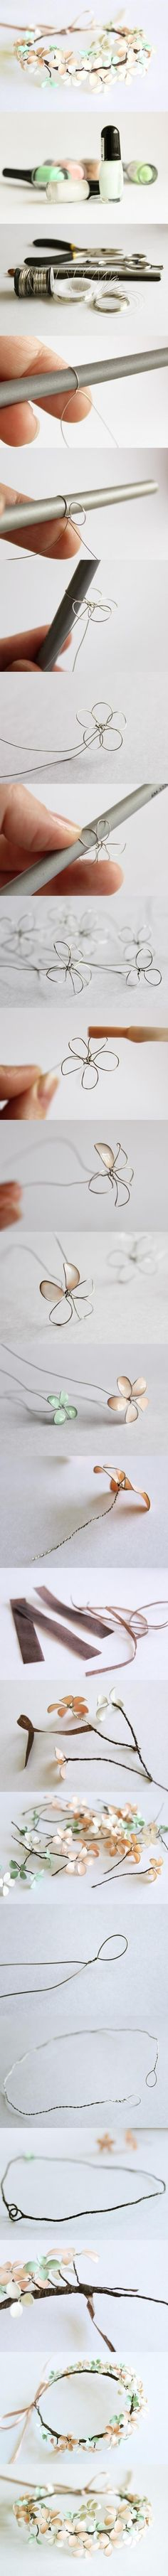 Amazing! Make beautiful flowers from wire & nail polish!!